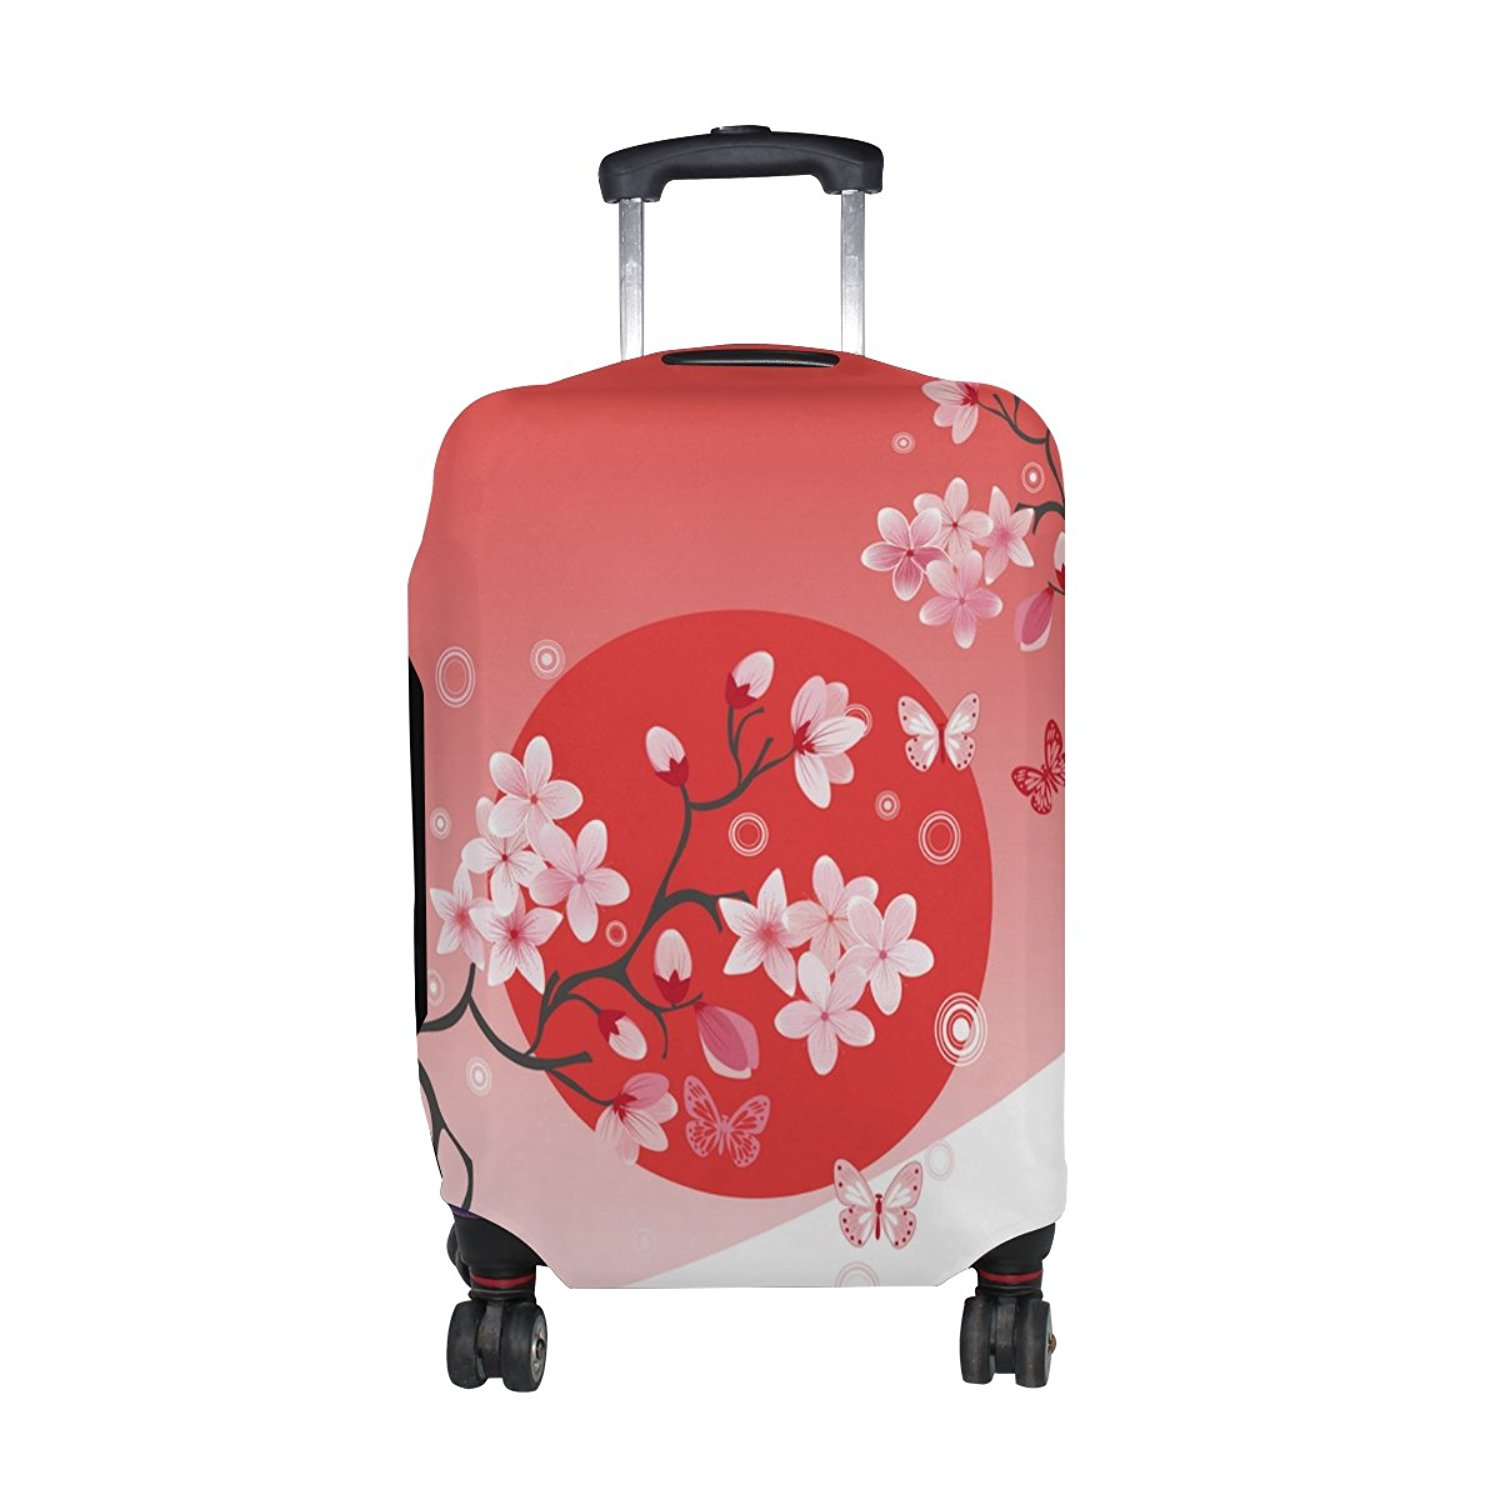 INTERESTPRINT Travel Luggage Protector Suitcase Covers Fit 18-28 Inch Cherries